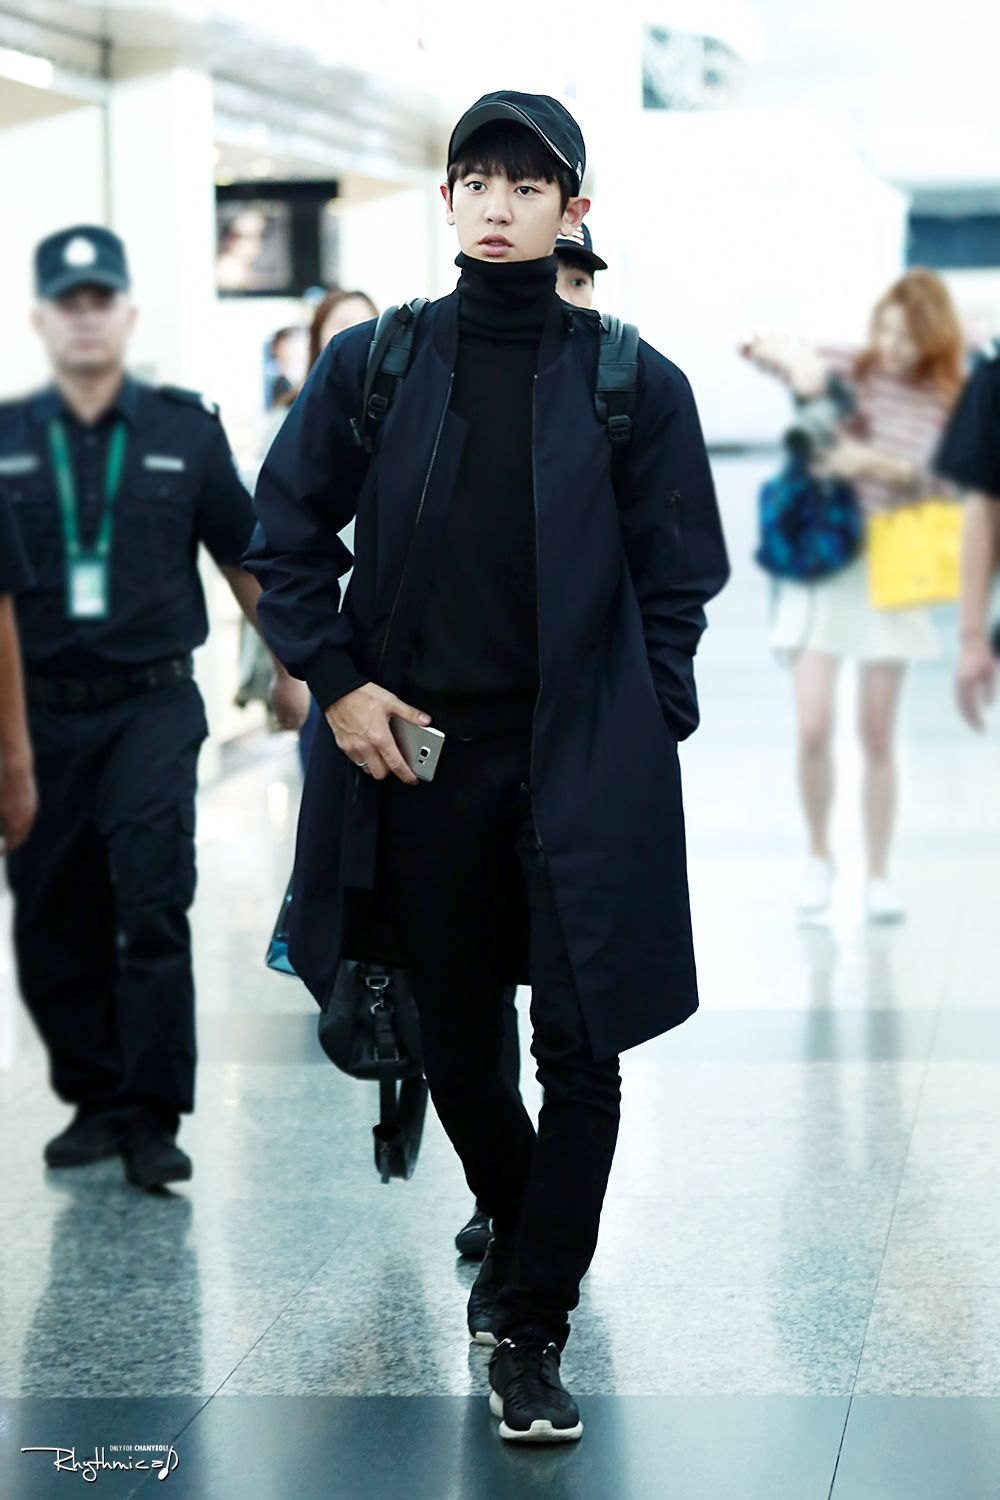 10 Ide Mix and Match Outfit Hitam ala Chanyeol EXO, Swag Abis!